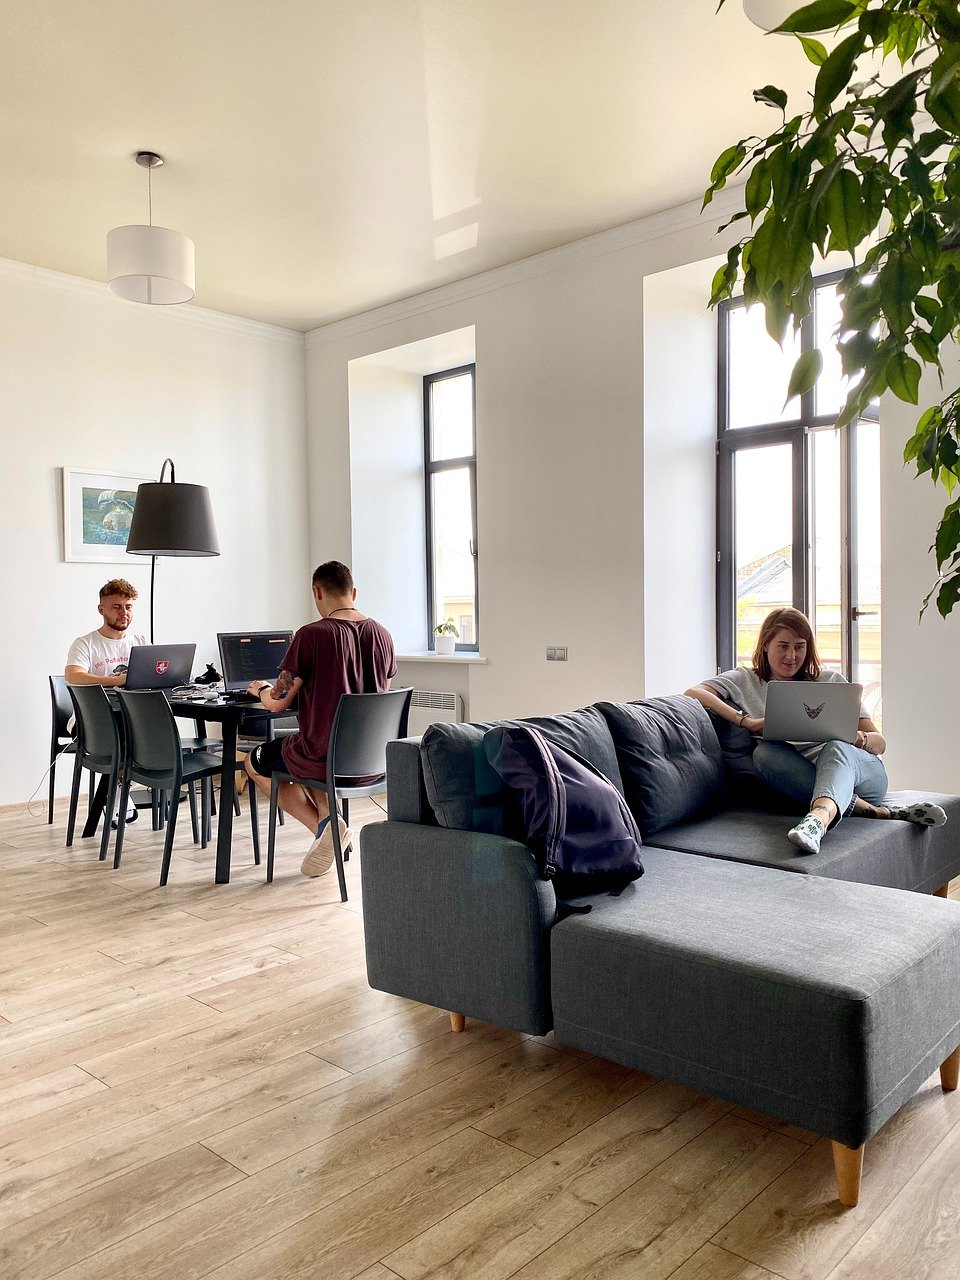 Co-living in Luxemburg